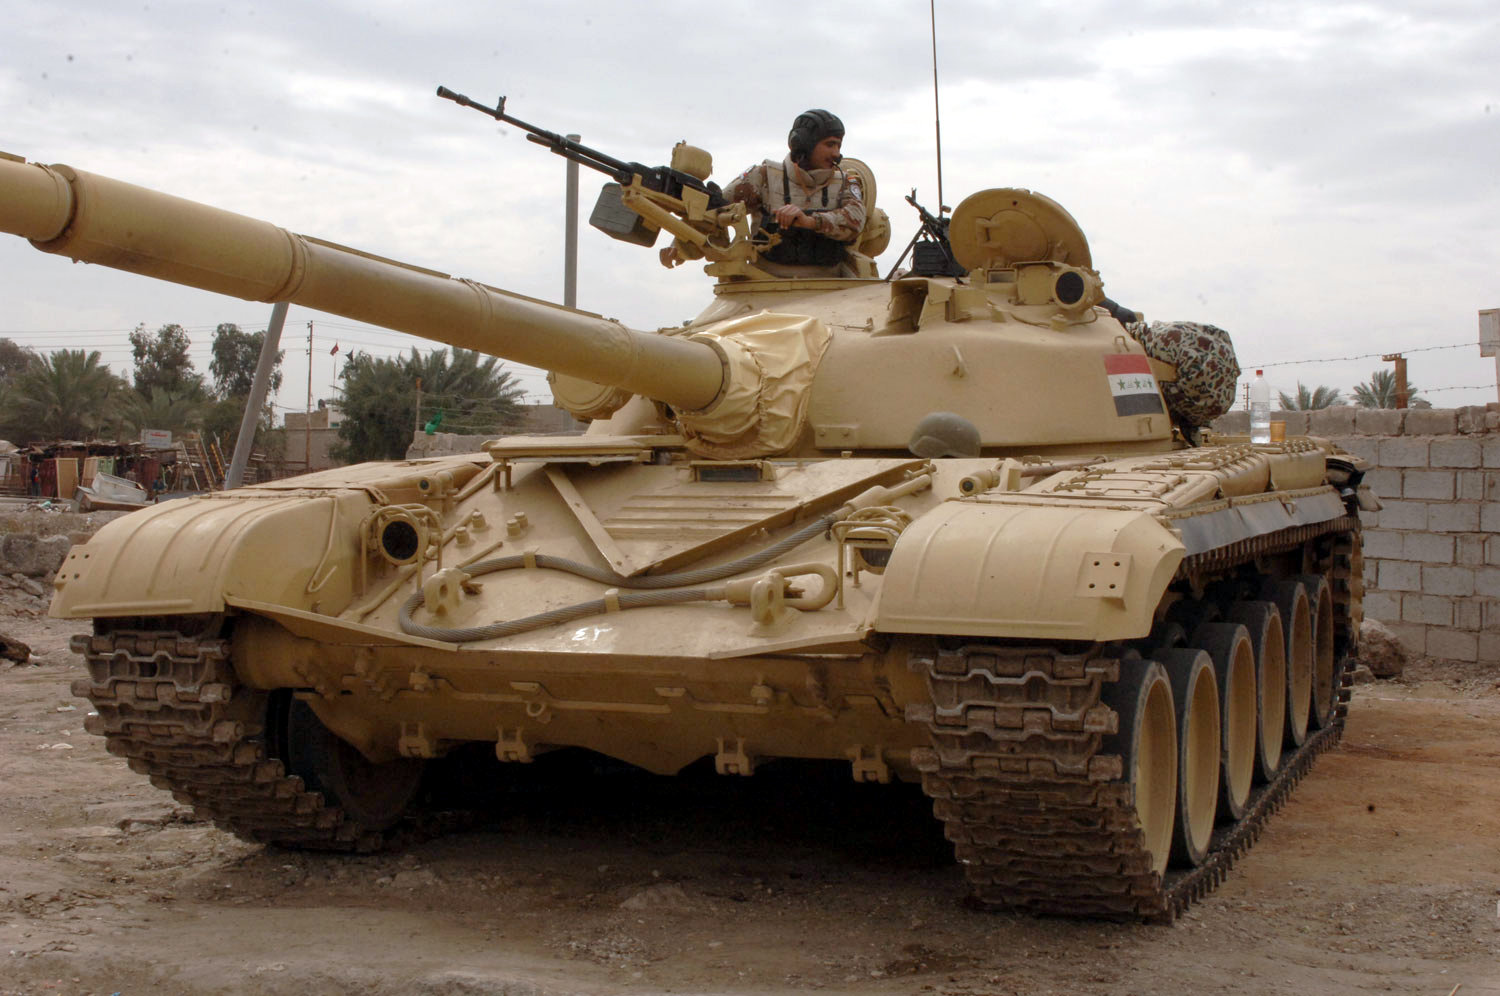 File:new iraqi army tank